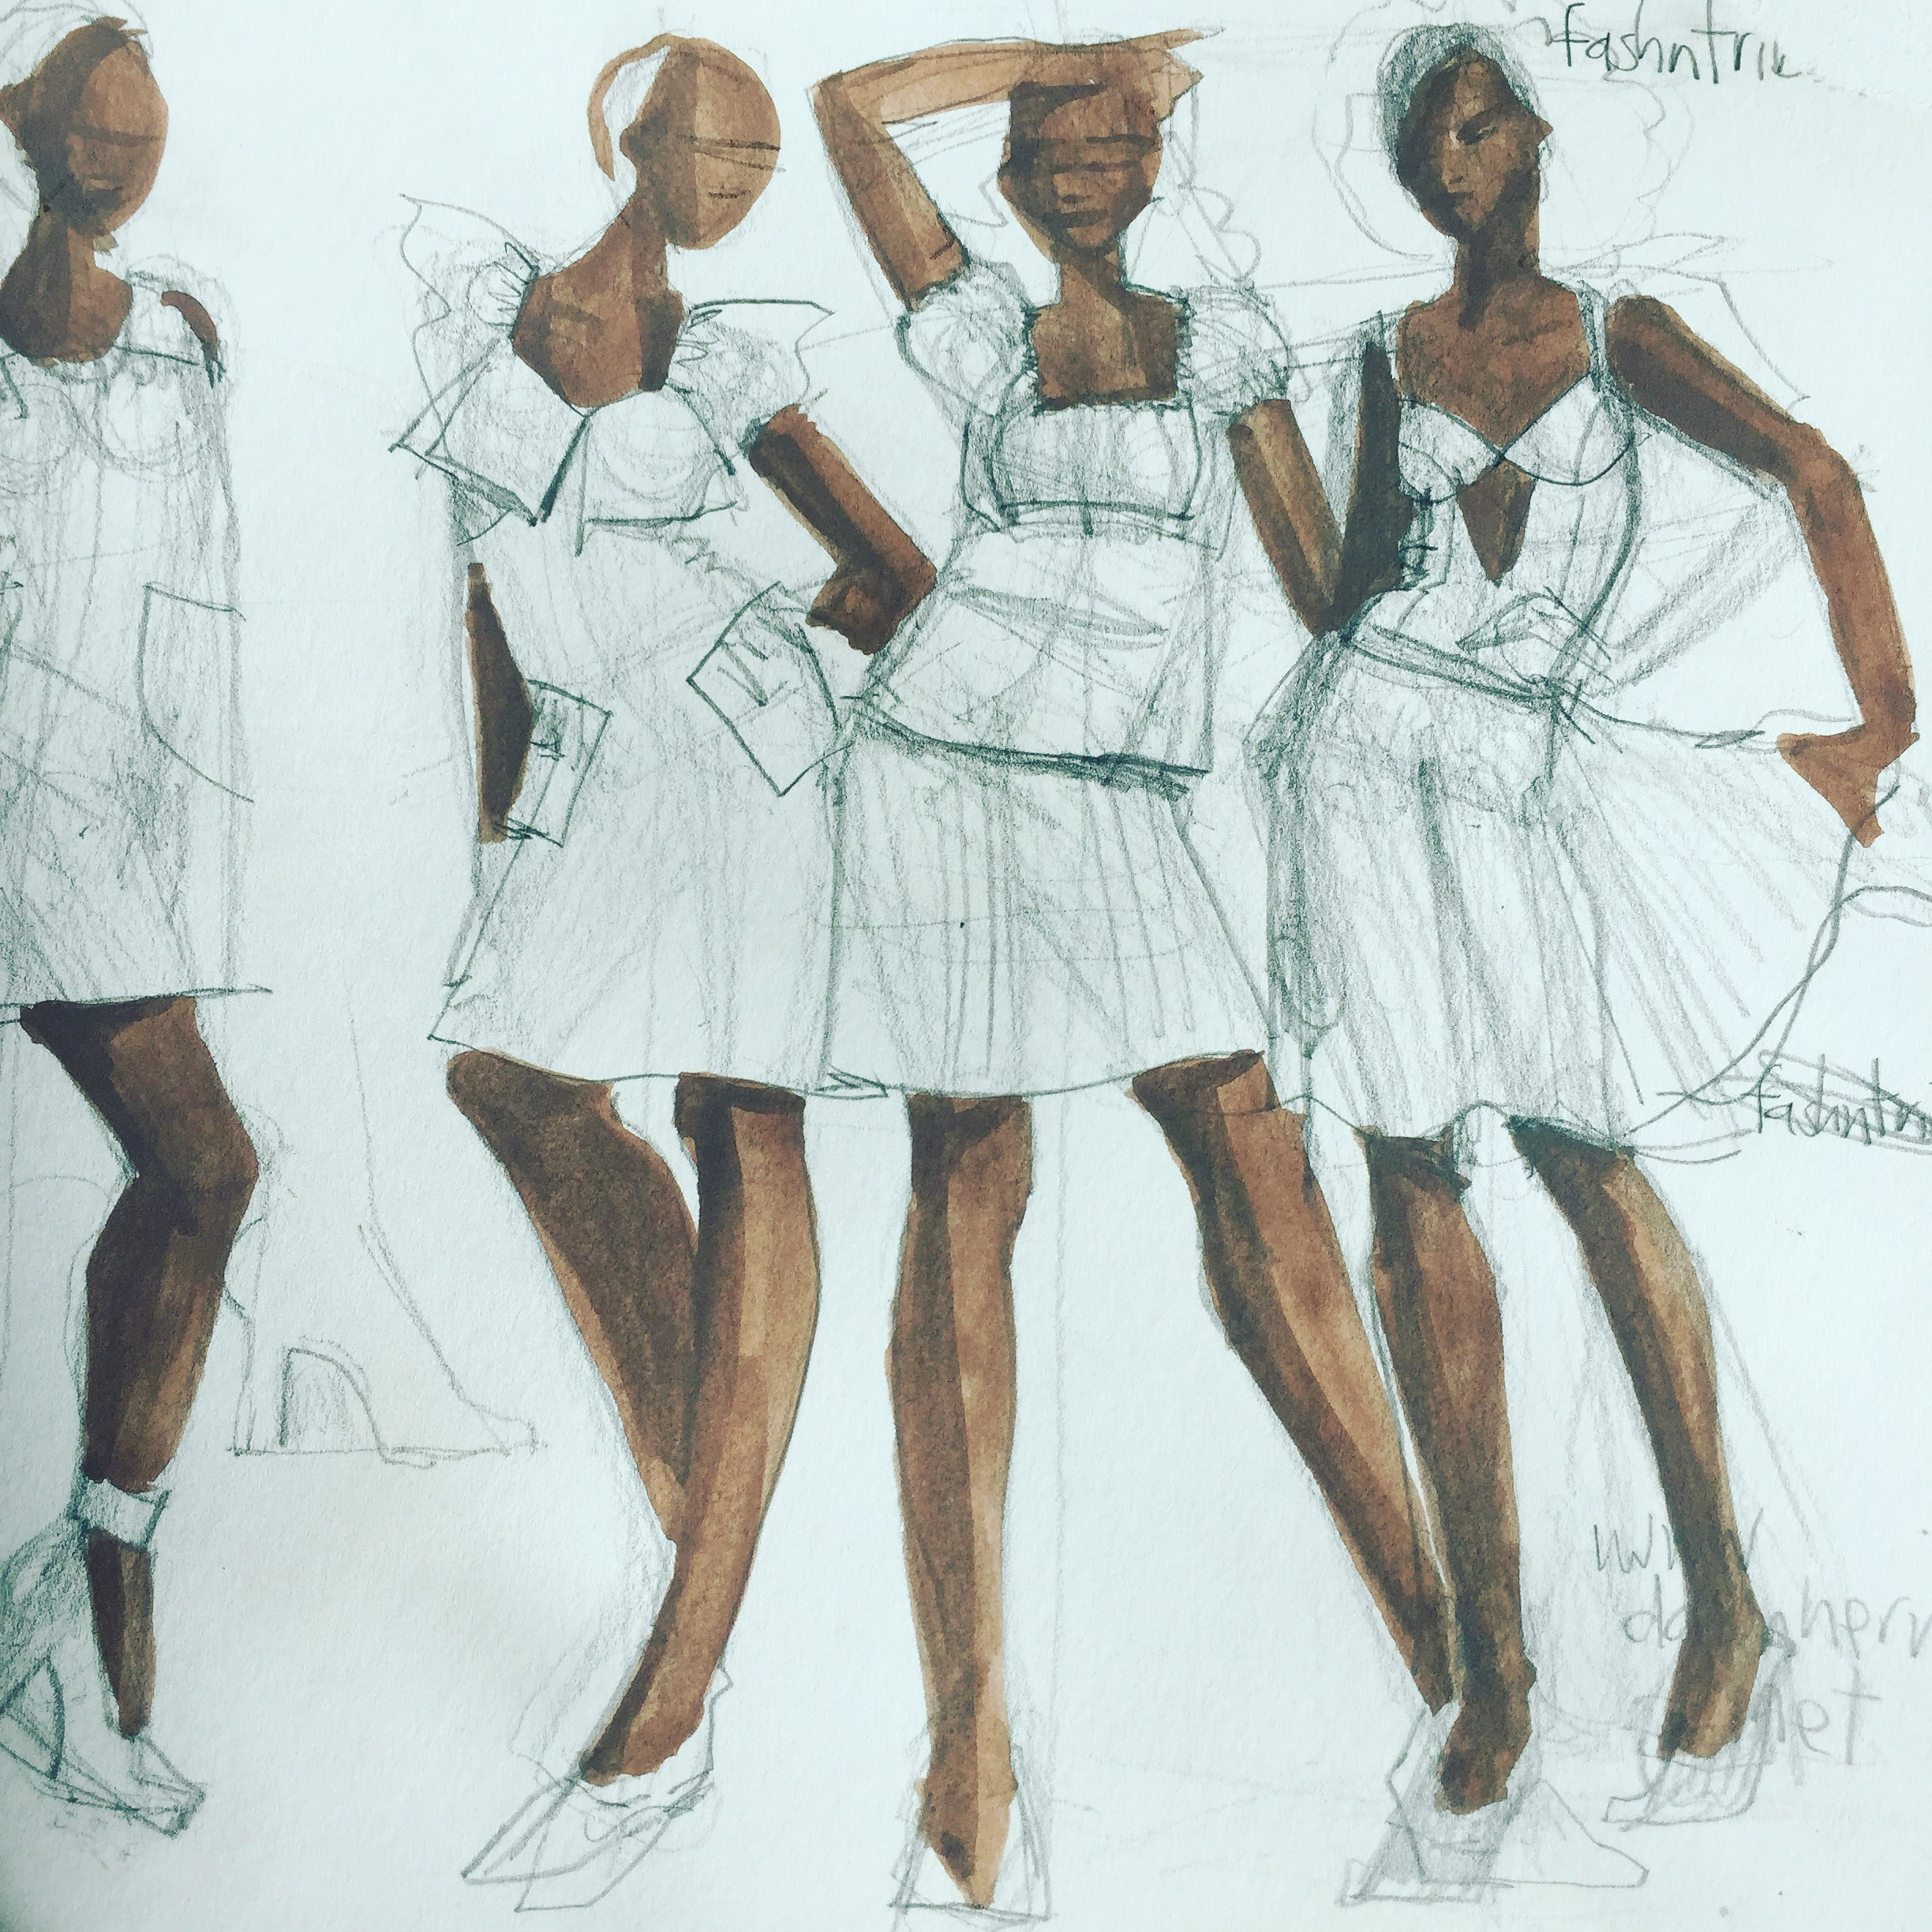 Sign Up For Freedom Fashion Design And Sketching Soulful Foundation Course